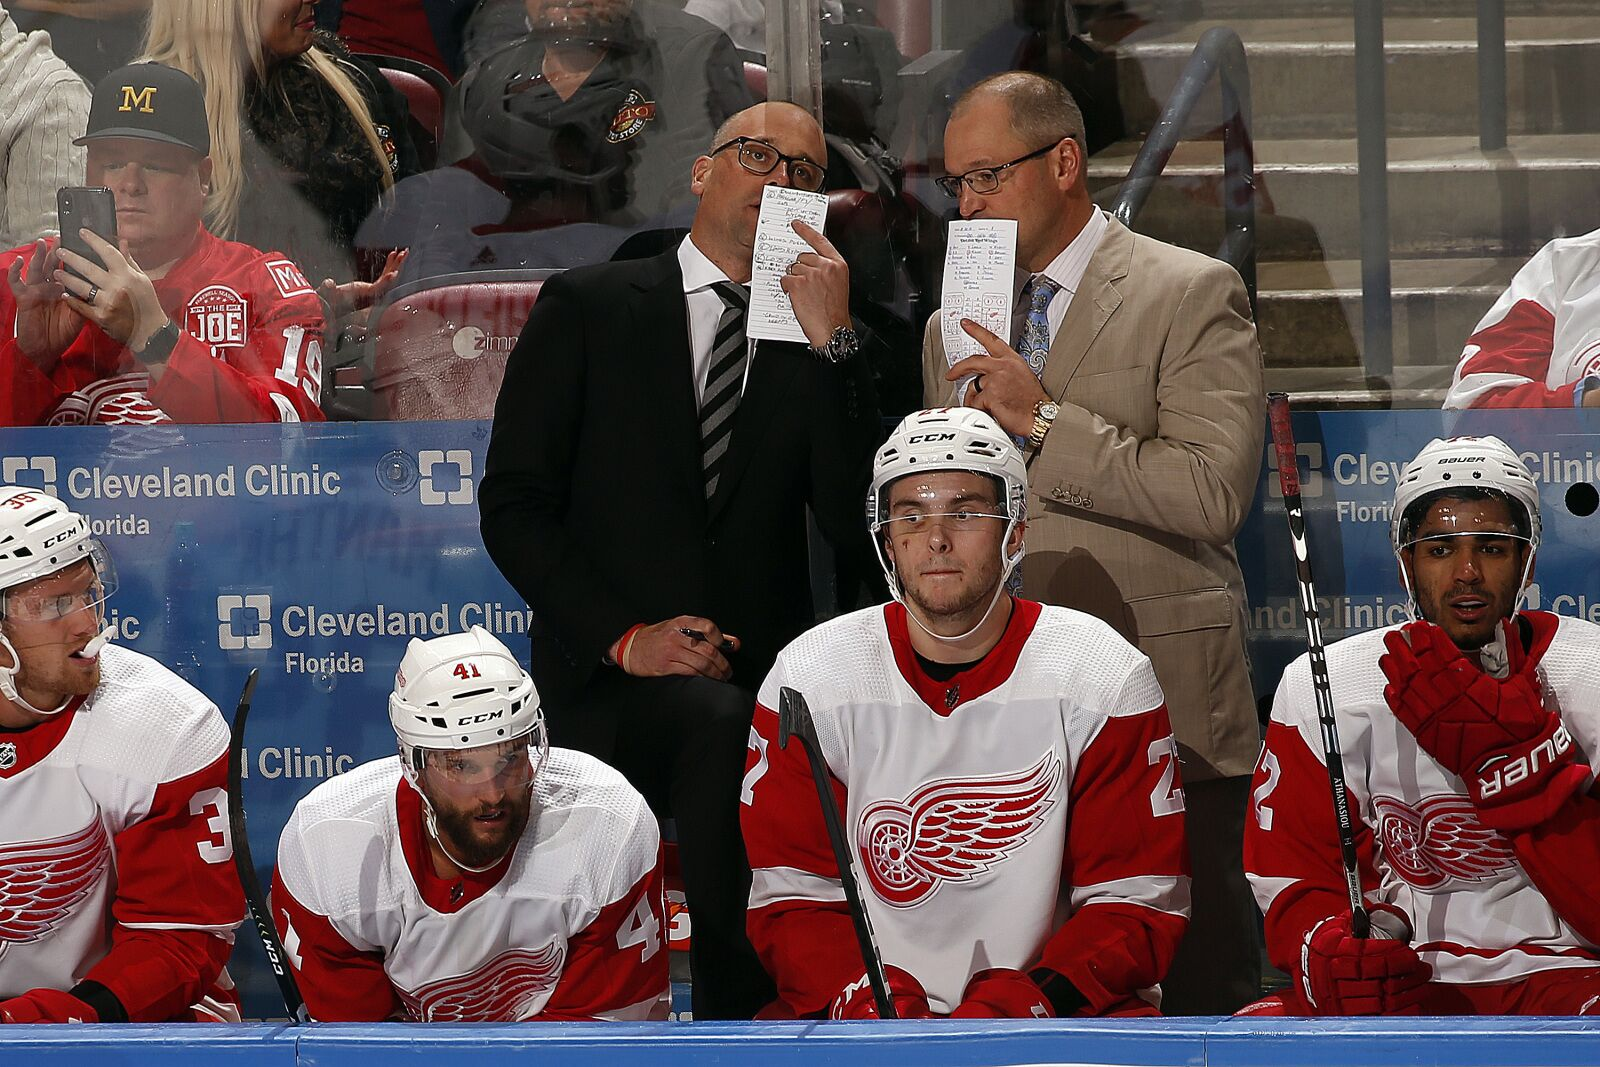 Detroit Red Wings: Dan Bylsma not a lock to be next Head Coach